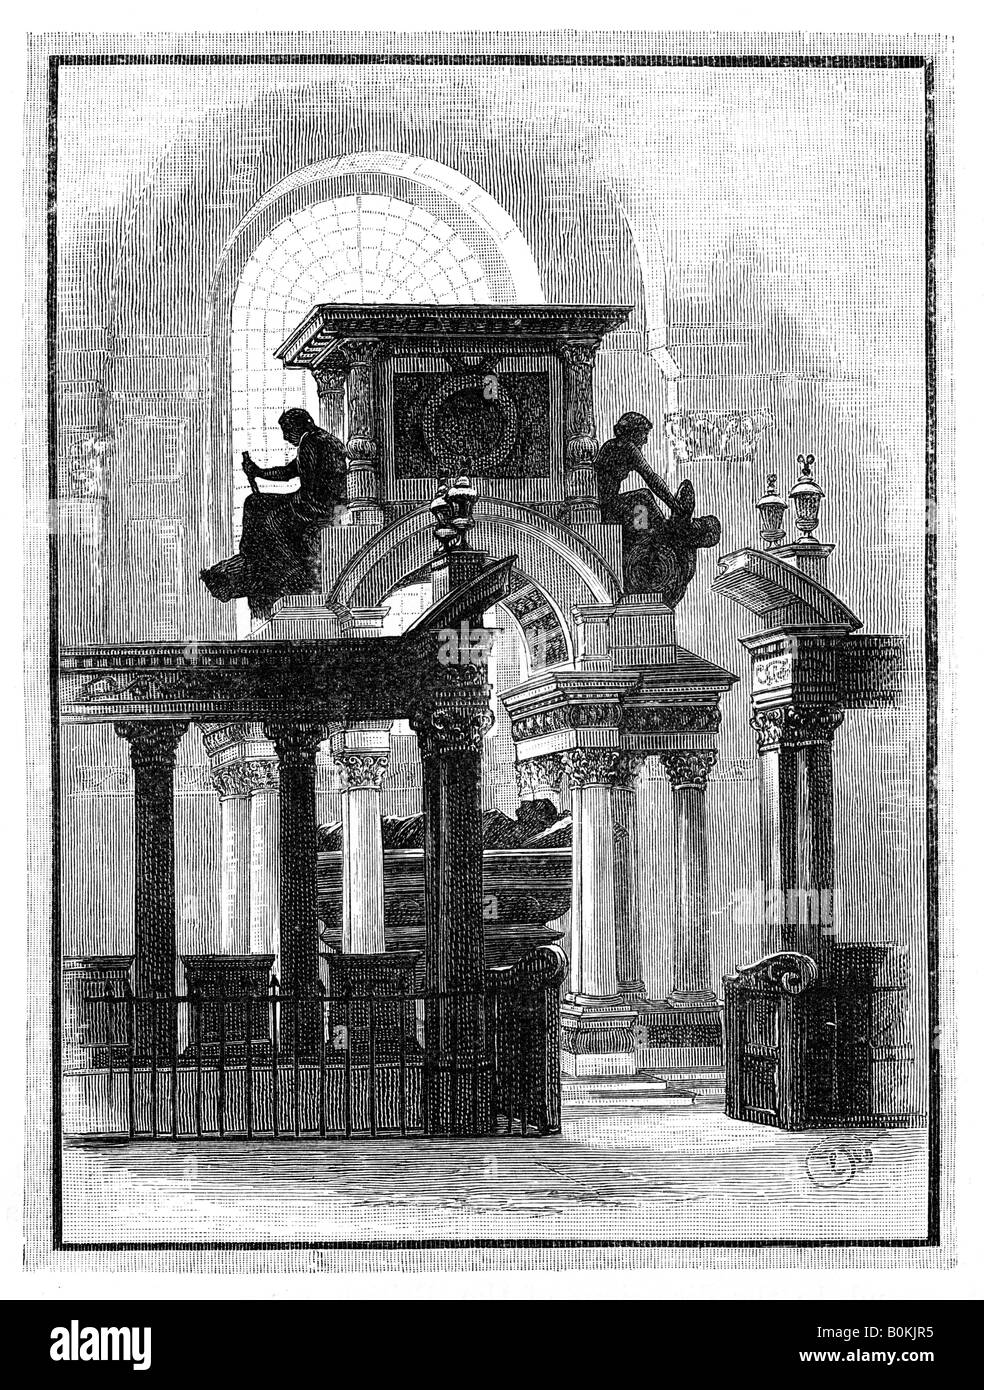 Wellington Monument, St Paul's Cathedral, London, c1888. Artist: Unknown Stock Photo